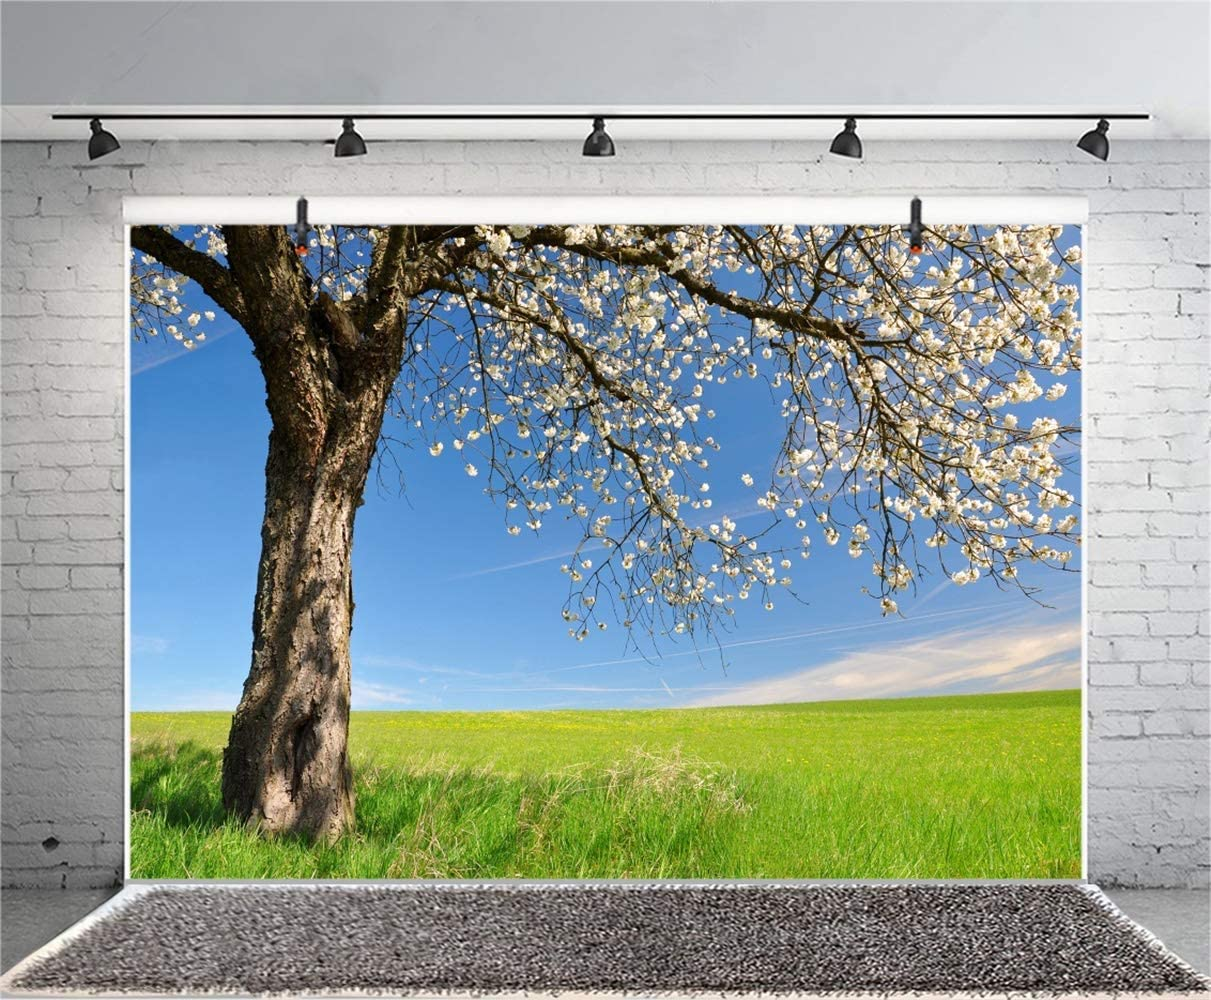 8x6.5ft Beautiful Blossoming Cherry Tree Background Spring Landscape Vinyl Phtography Backdrop Clear Weather Blue Sky Green Meadow Backdrops Wedding Photo Studio Post Card Personal Portraits